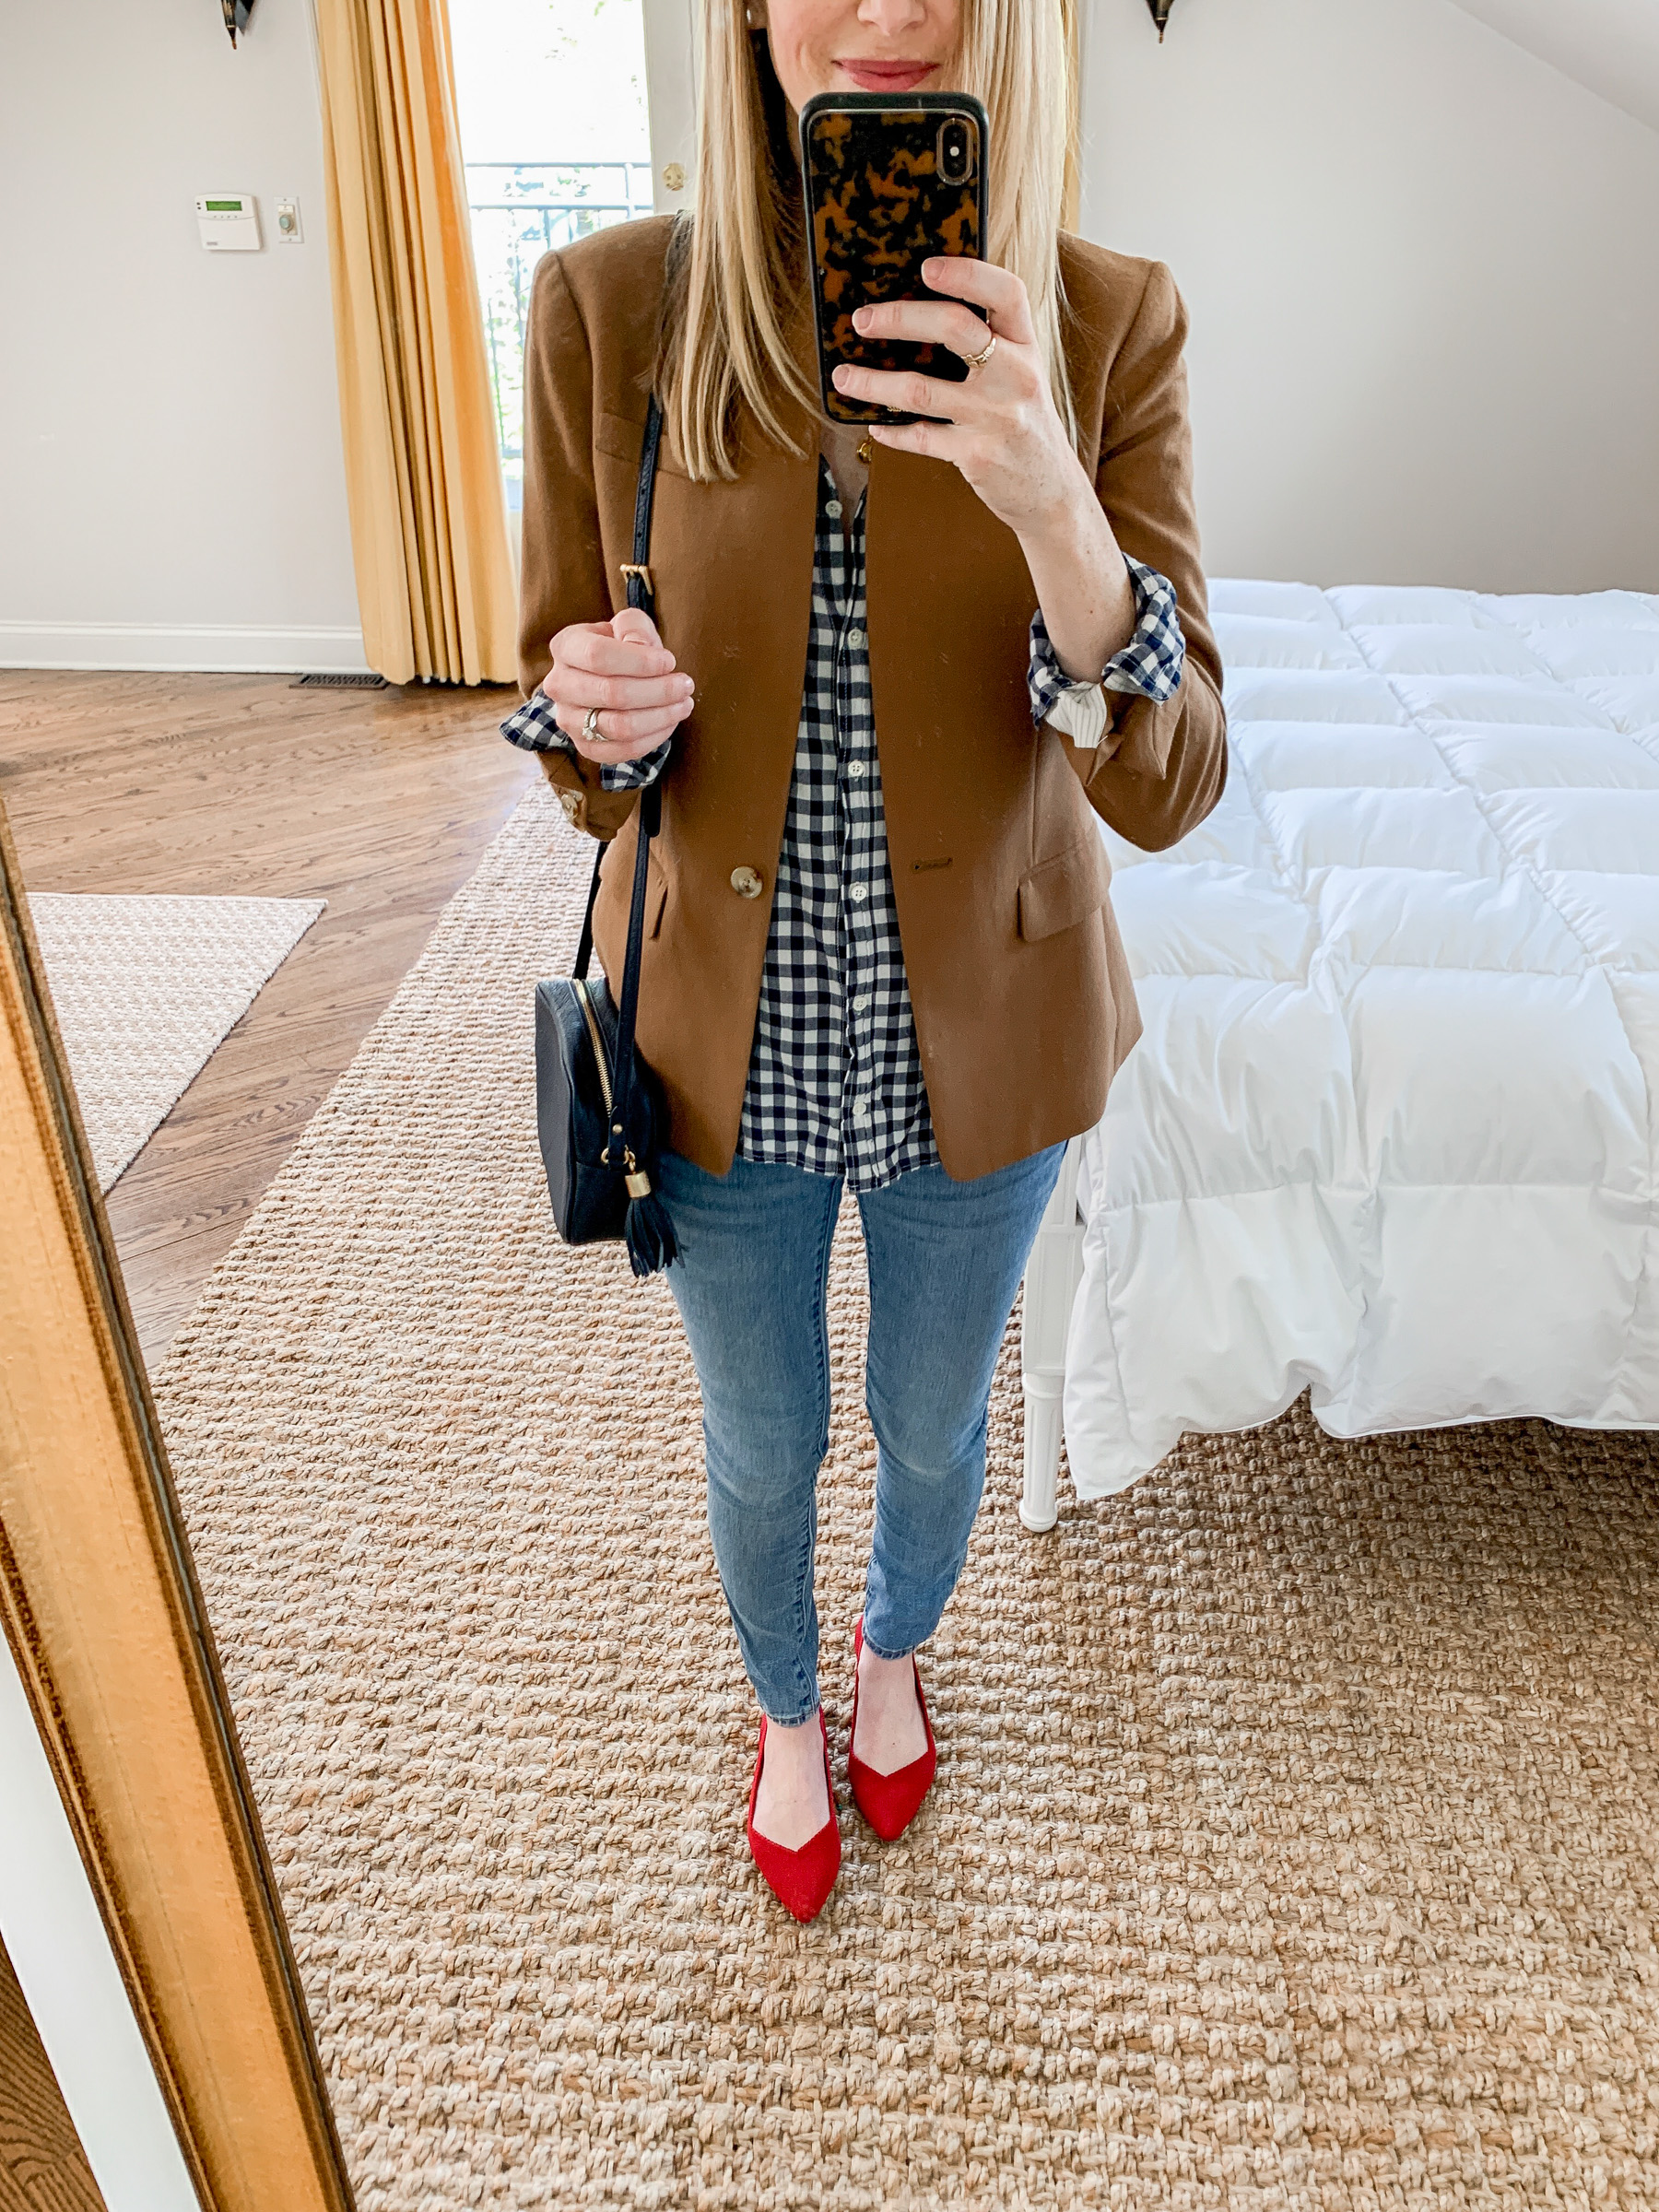 Kelly is sharing some Postpartum Outfits